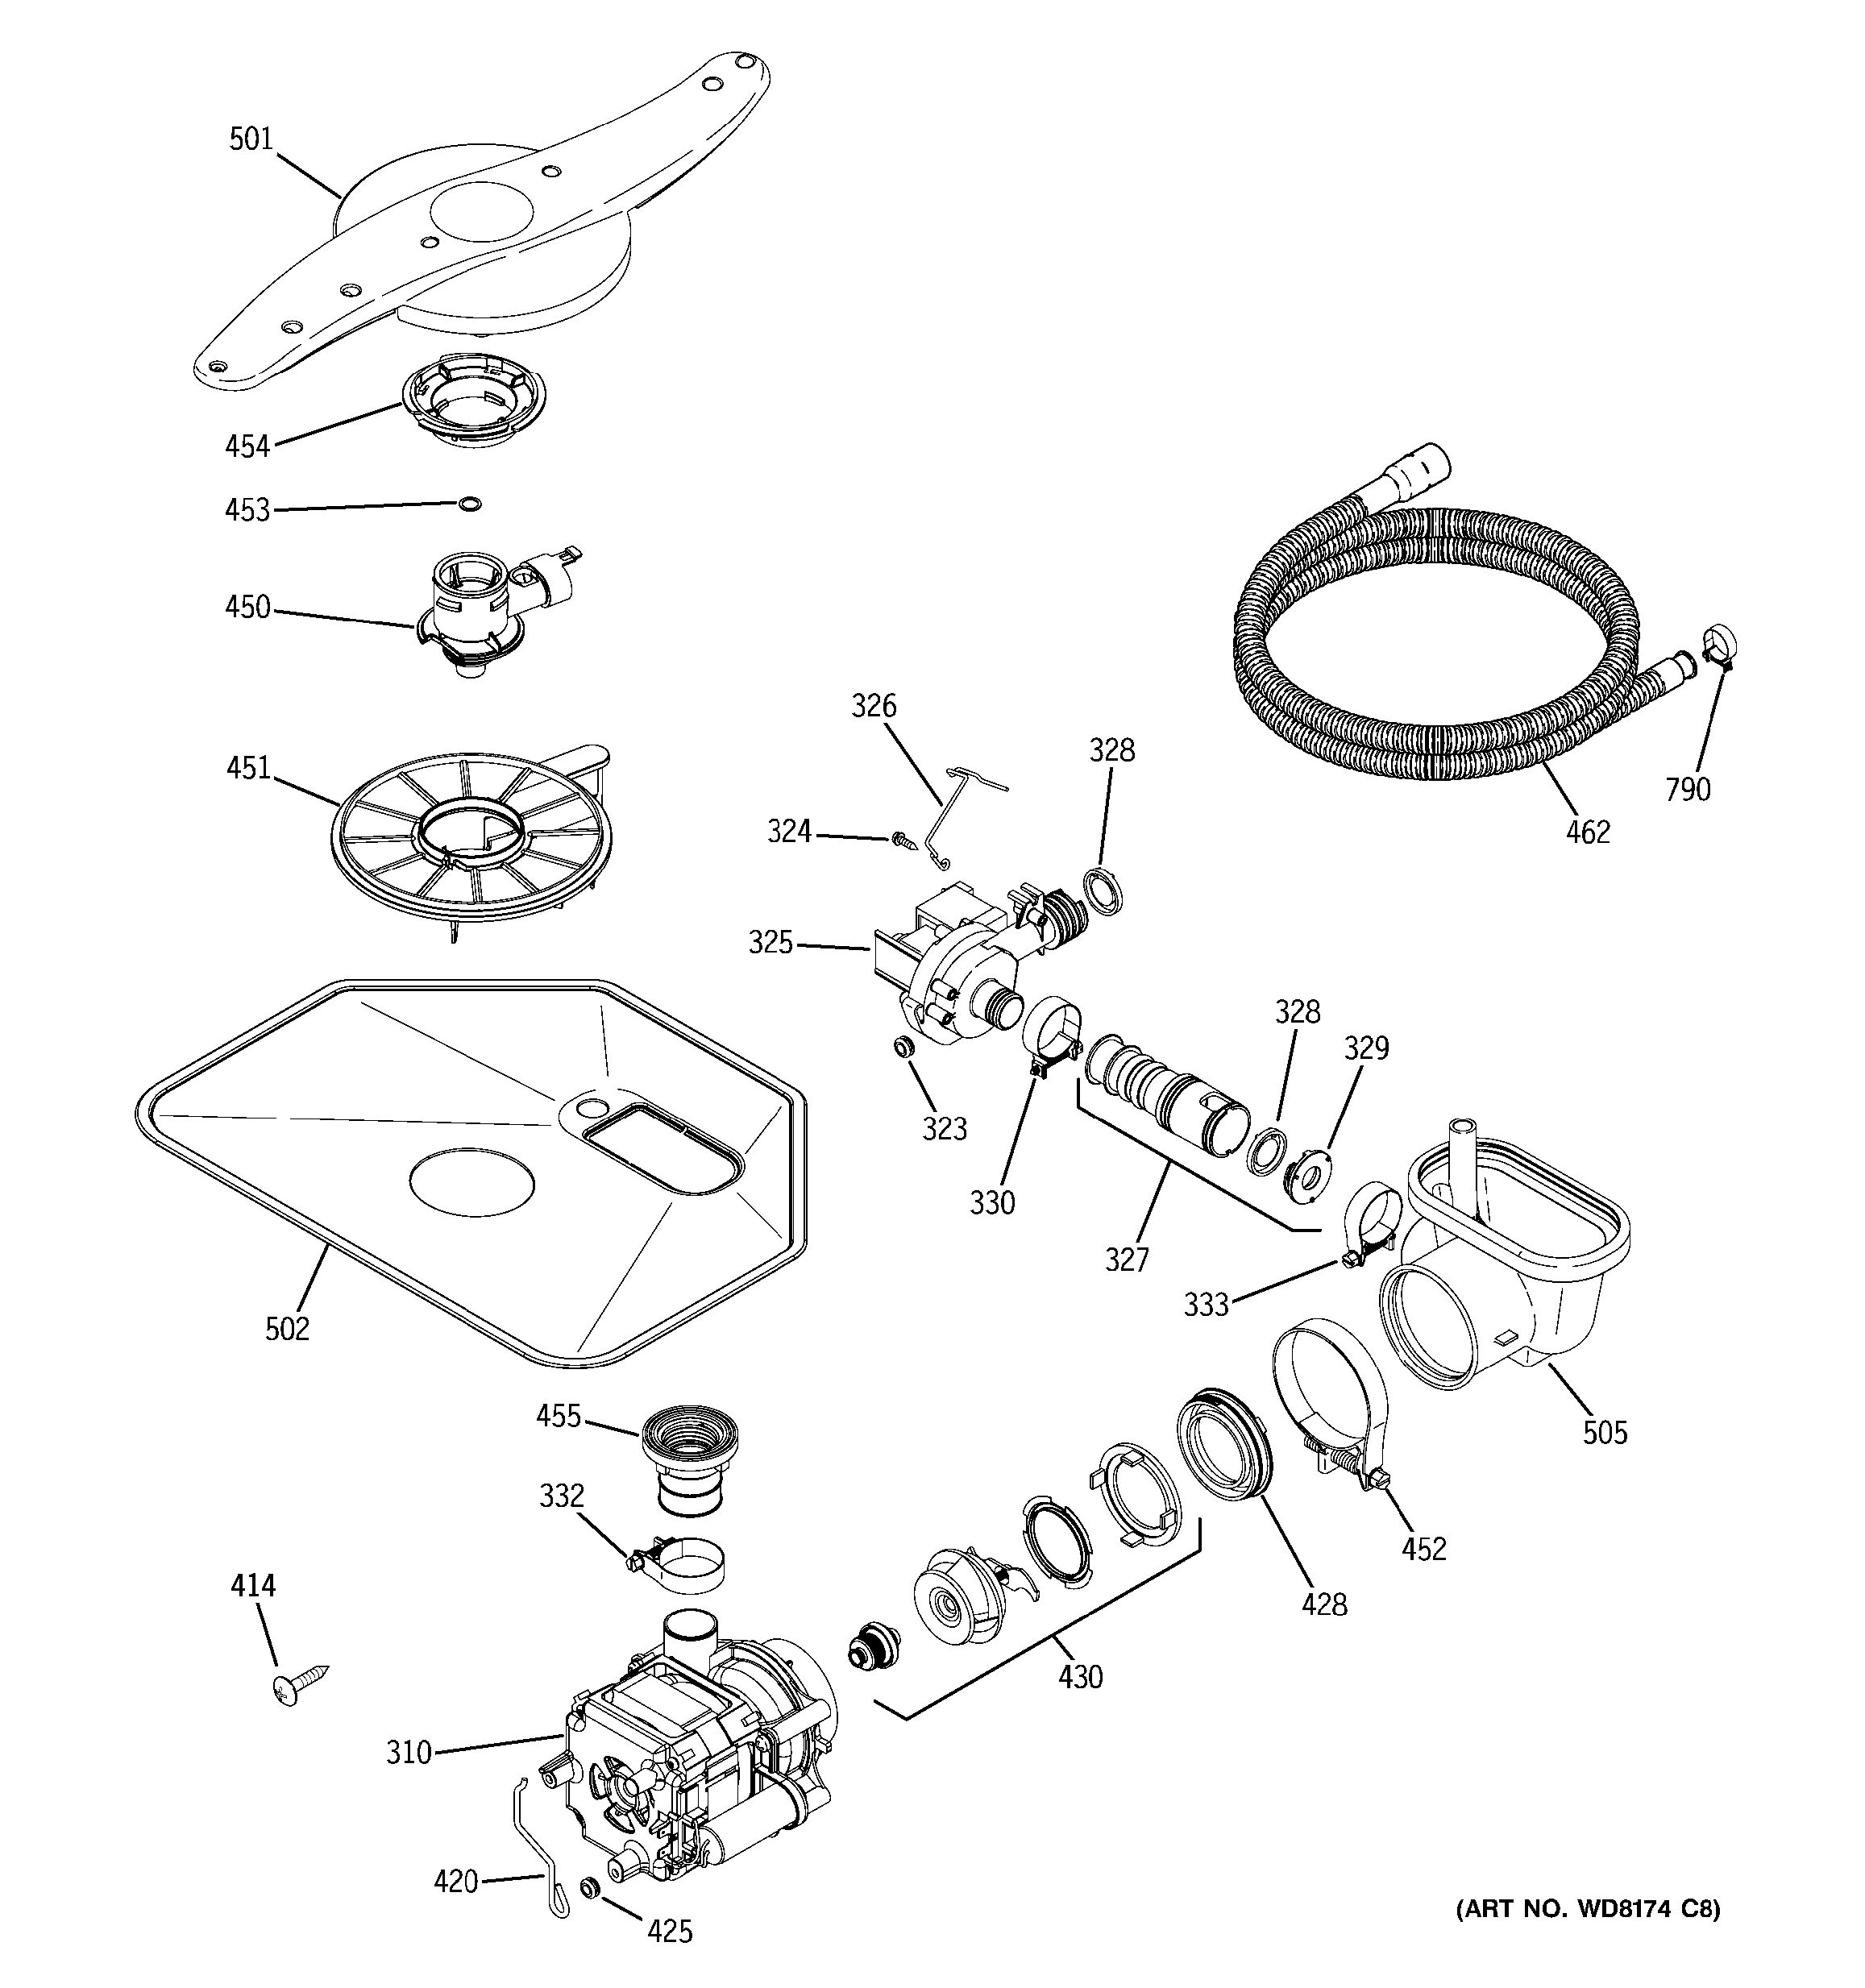 Assembly View For Motor Pump Mechanism